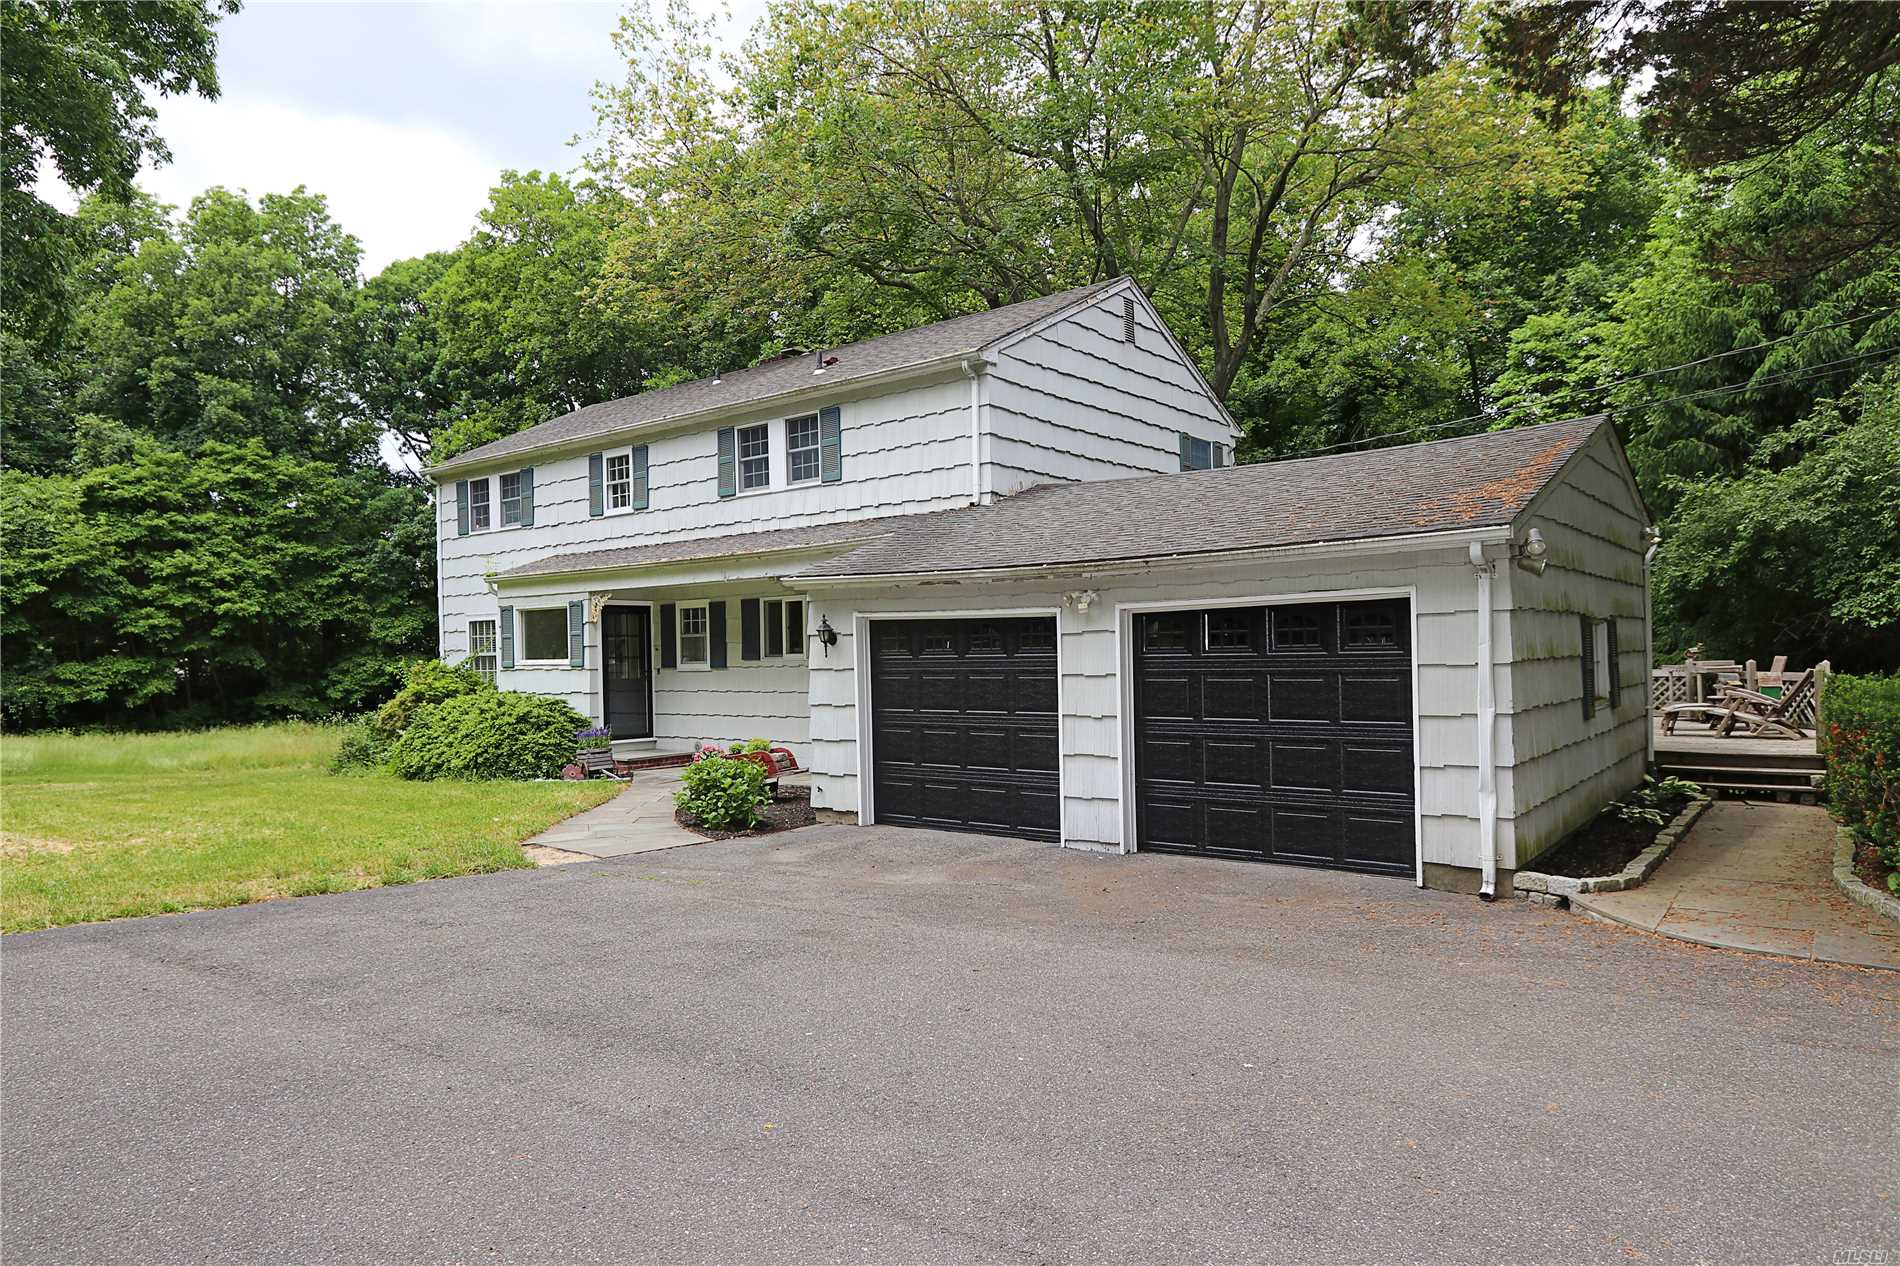 Picture Perfect, Beautifully Decorated Lloyd Harbor Colonial. Fabulous Floor Plan For Entertaining. Tons Of Natural Light. Brand New Hall Bathroom. Inviting Family Rm With Fireplace. 2.46 Park Like Usable Acres. Convenient To Town And Beach. Beach Rights To Lloyd Harbor Village Beach.